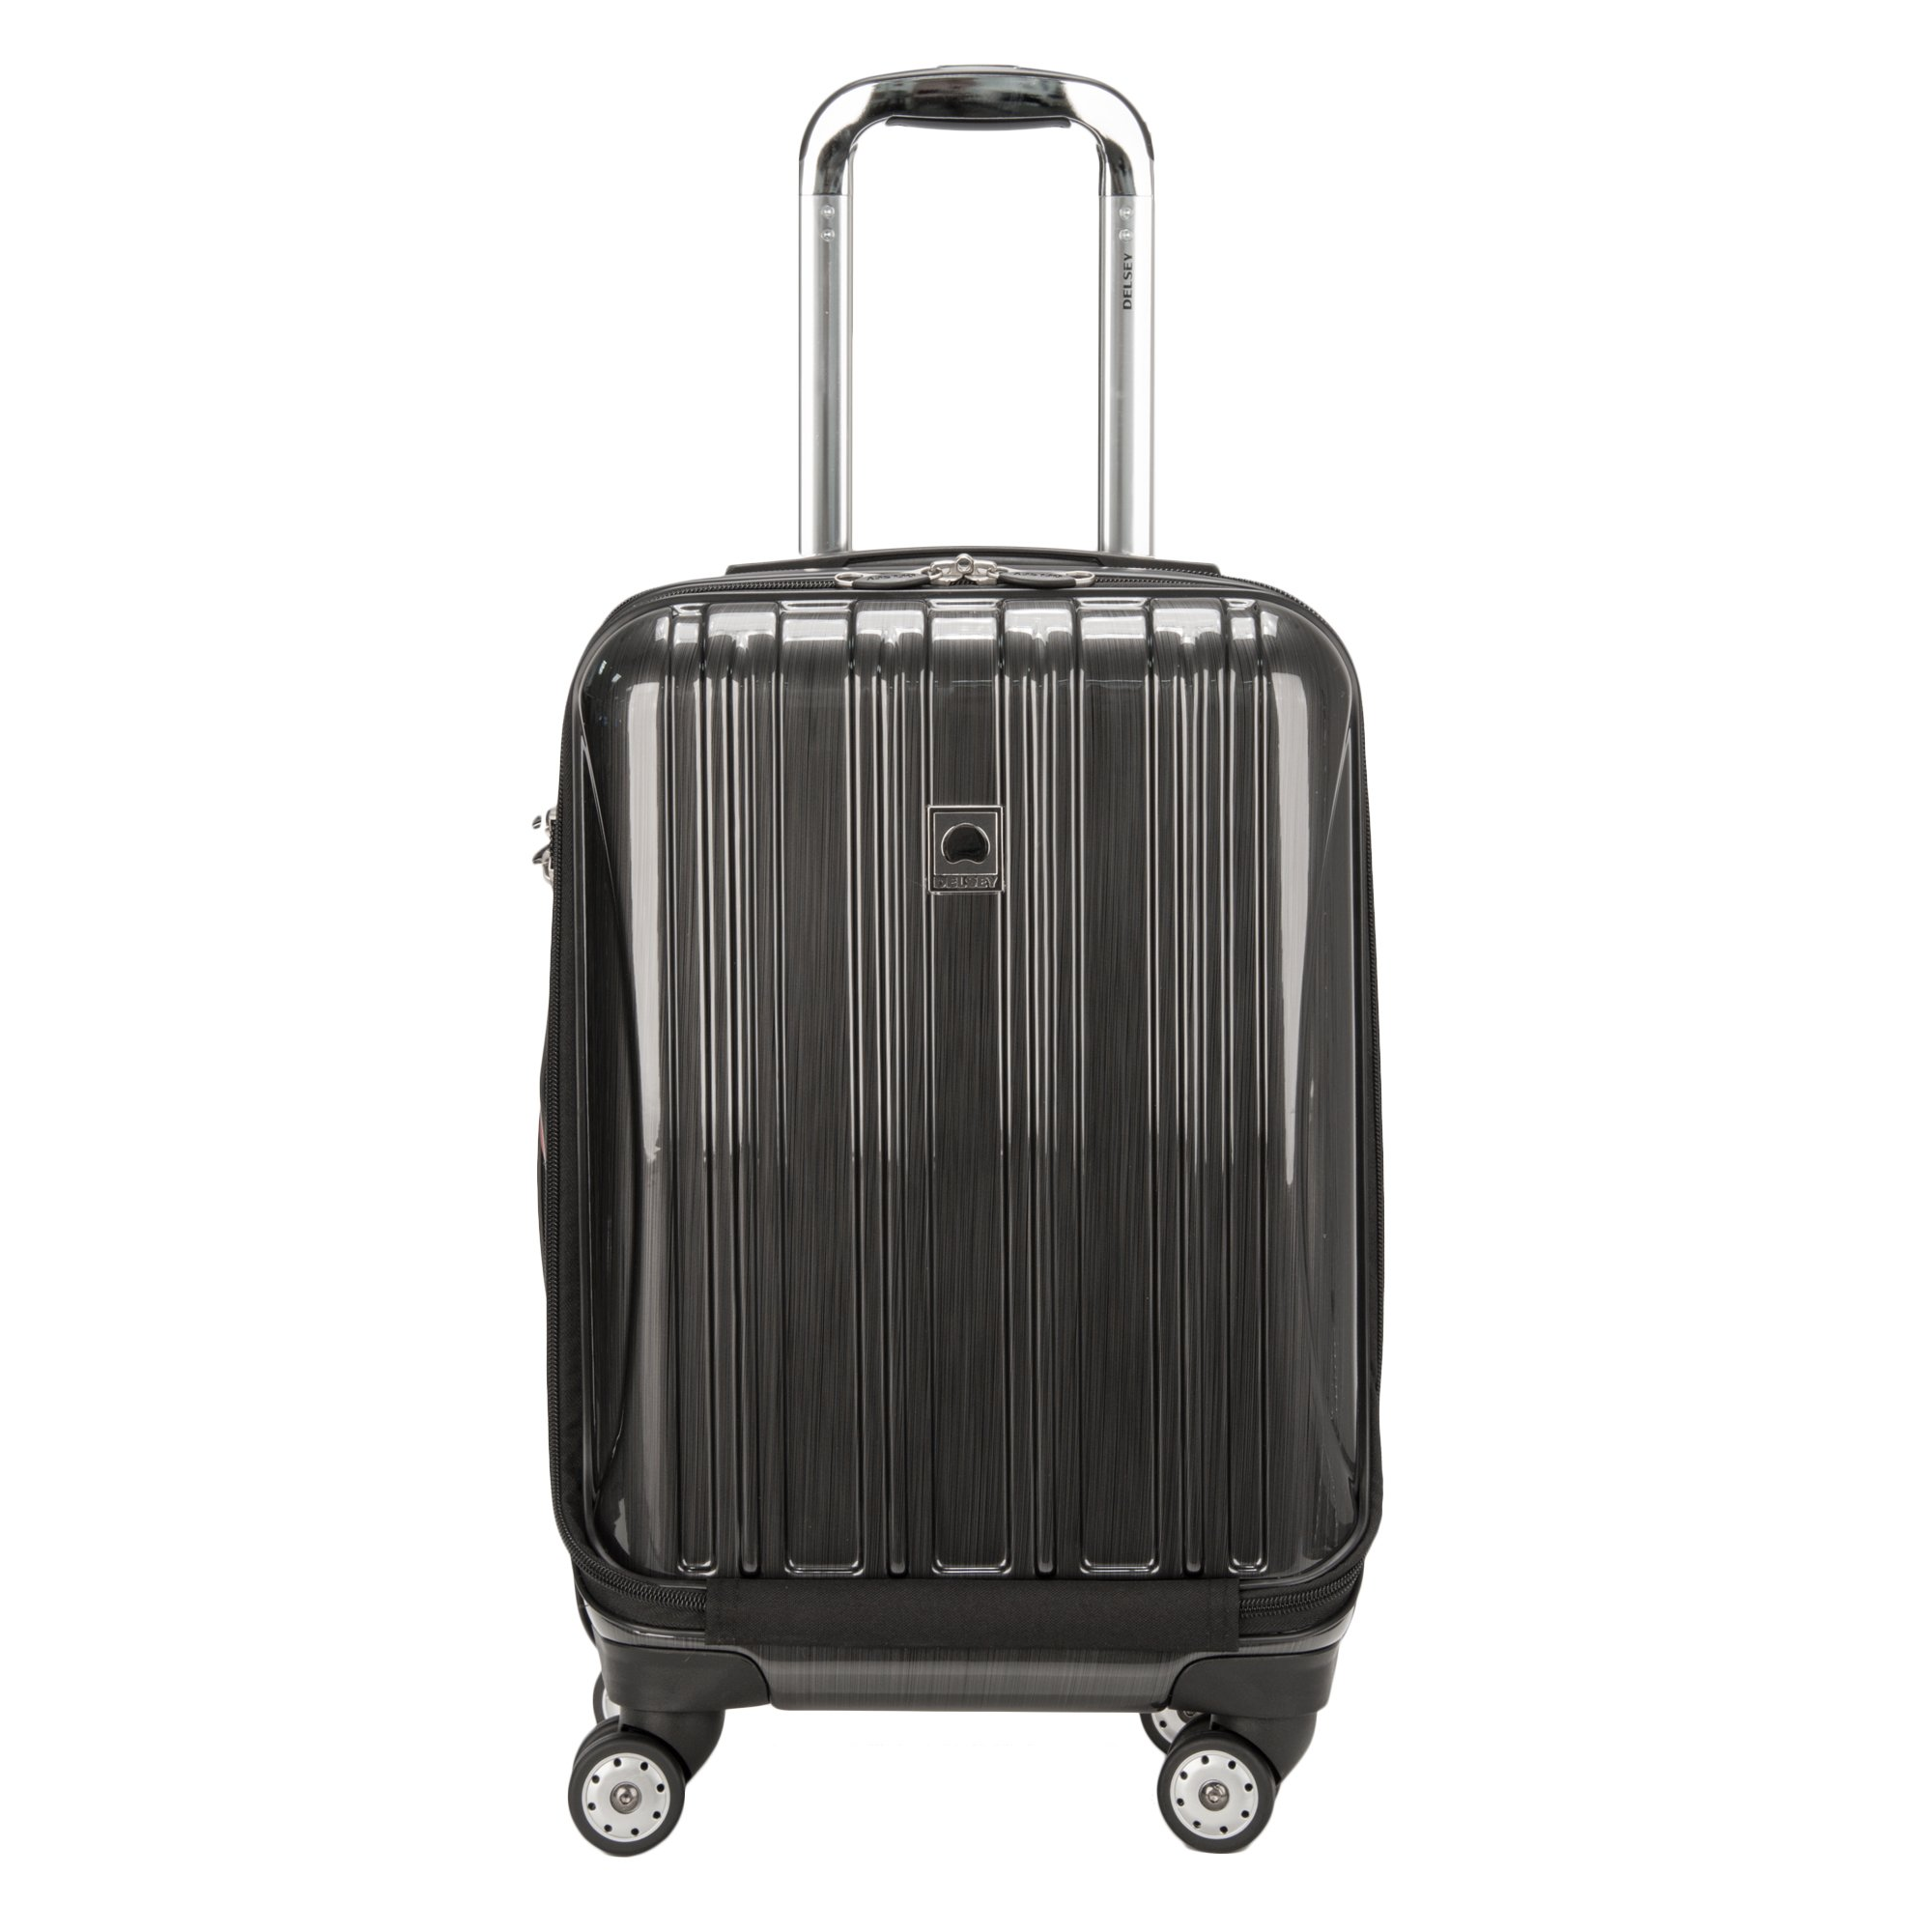 DELSEY Paris Luggage Carry-On International (<20''), Brushed Charcoal